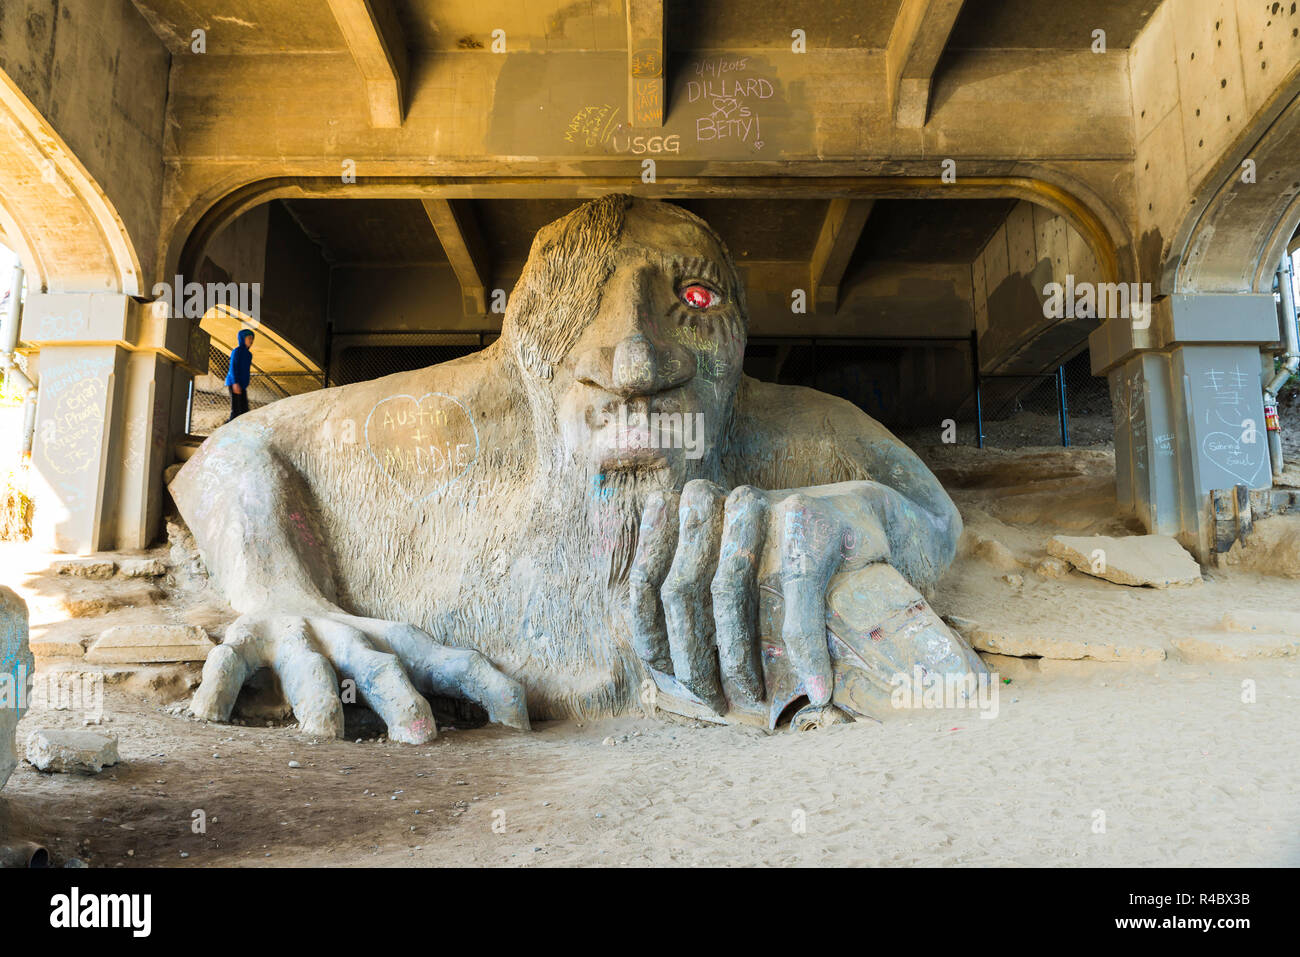 Seattle,Washington,USA.02/17/15 : scene of a big sand troll sculpture under the Aurora bridge. - Stock Image